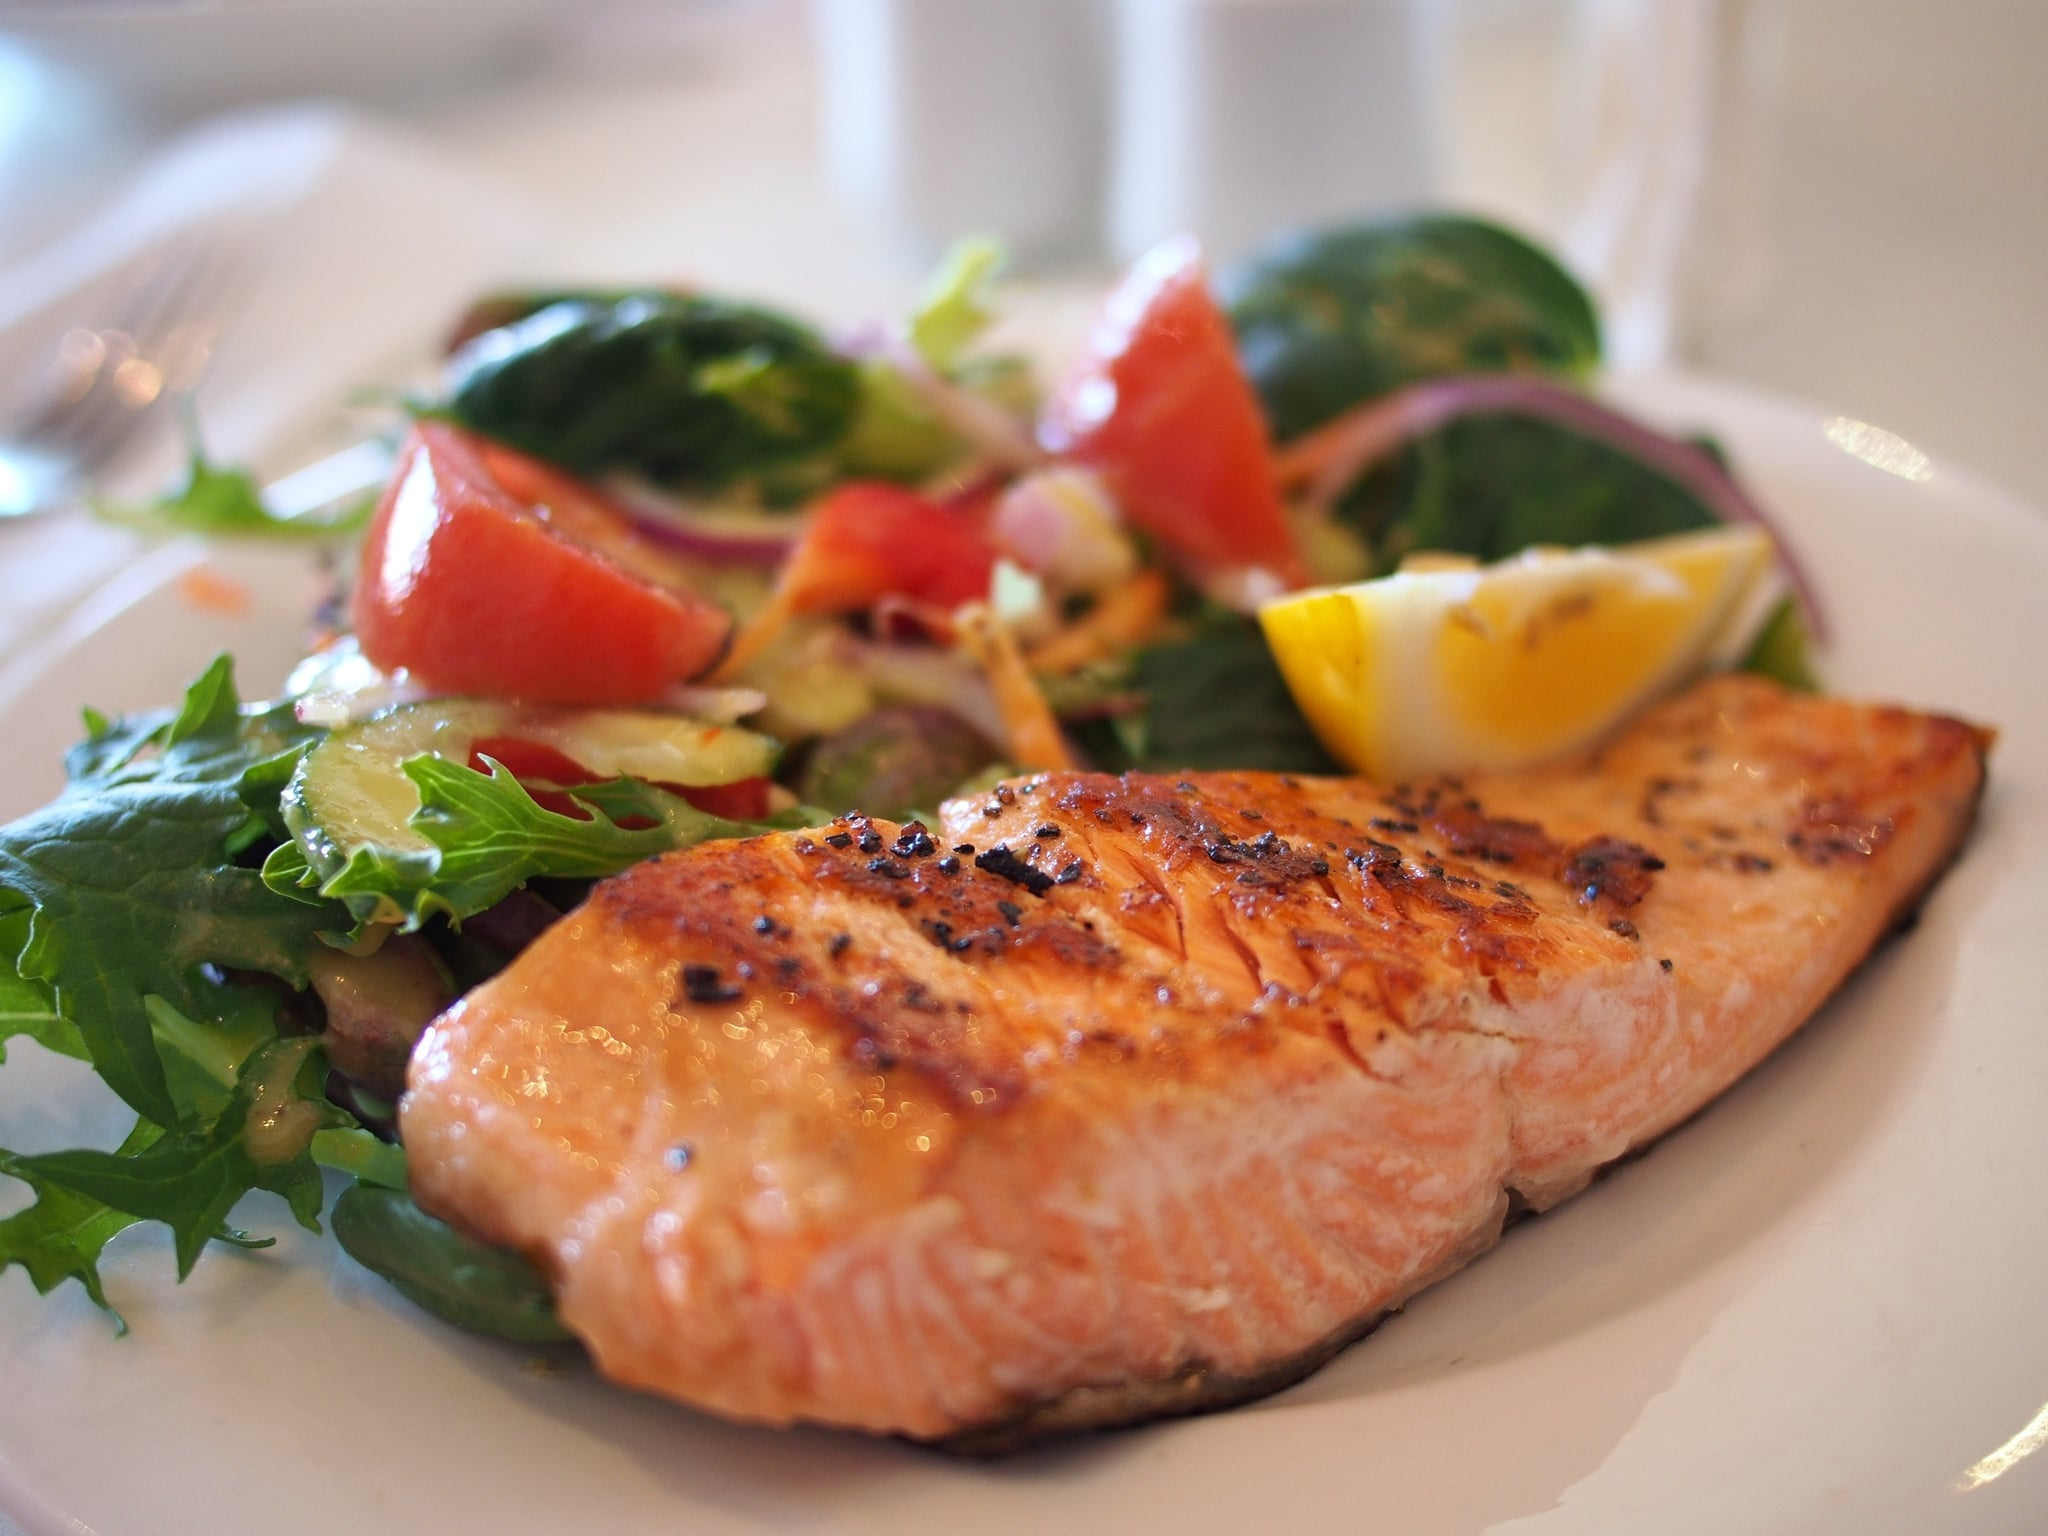 Nutritionists Recommend This Formula to Calculate Macros For Weight Loss